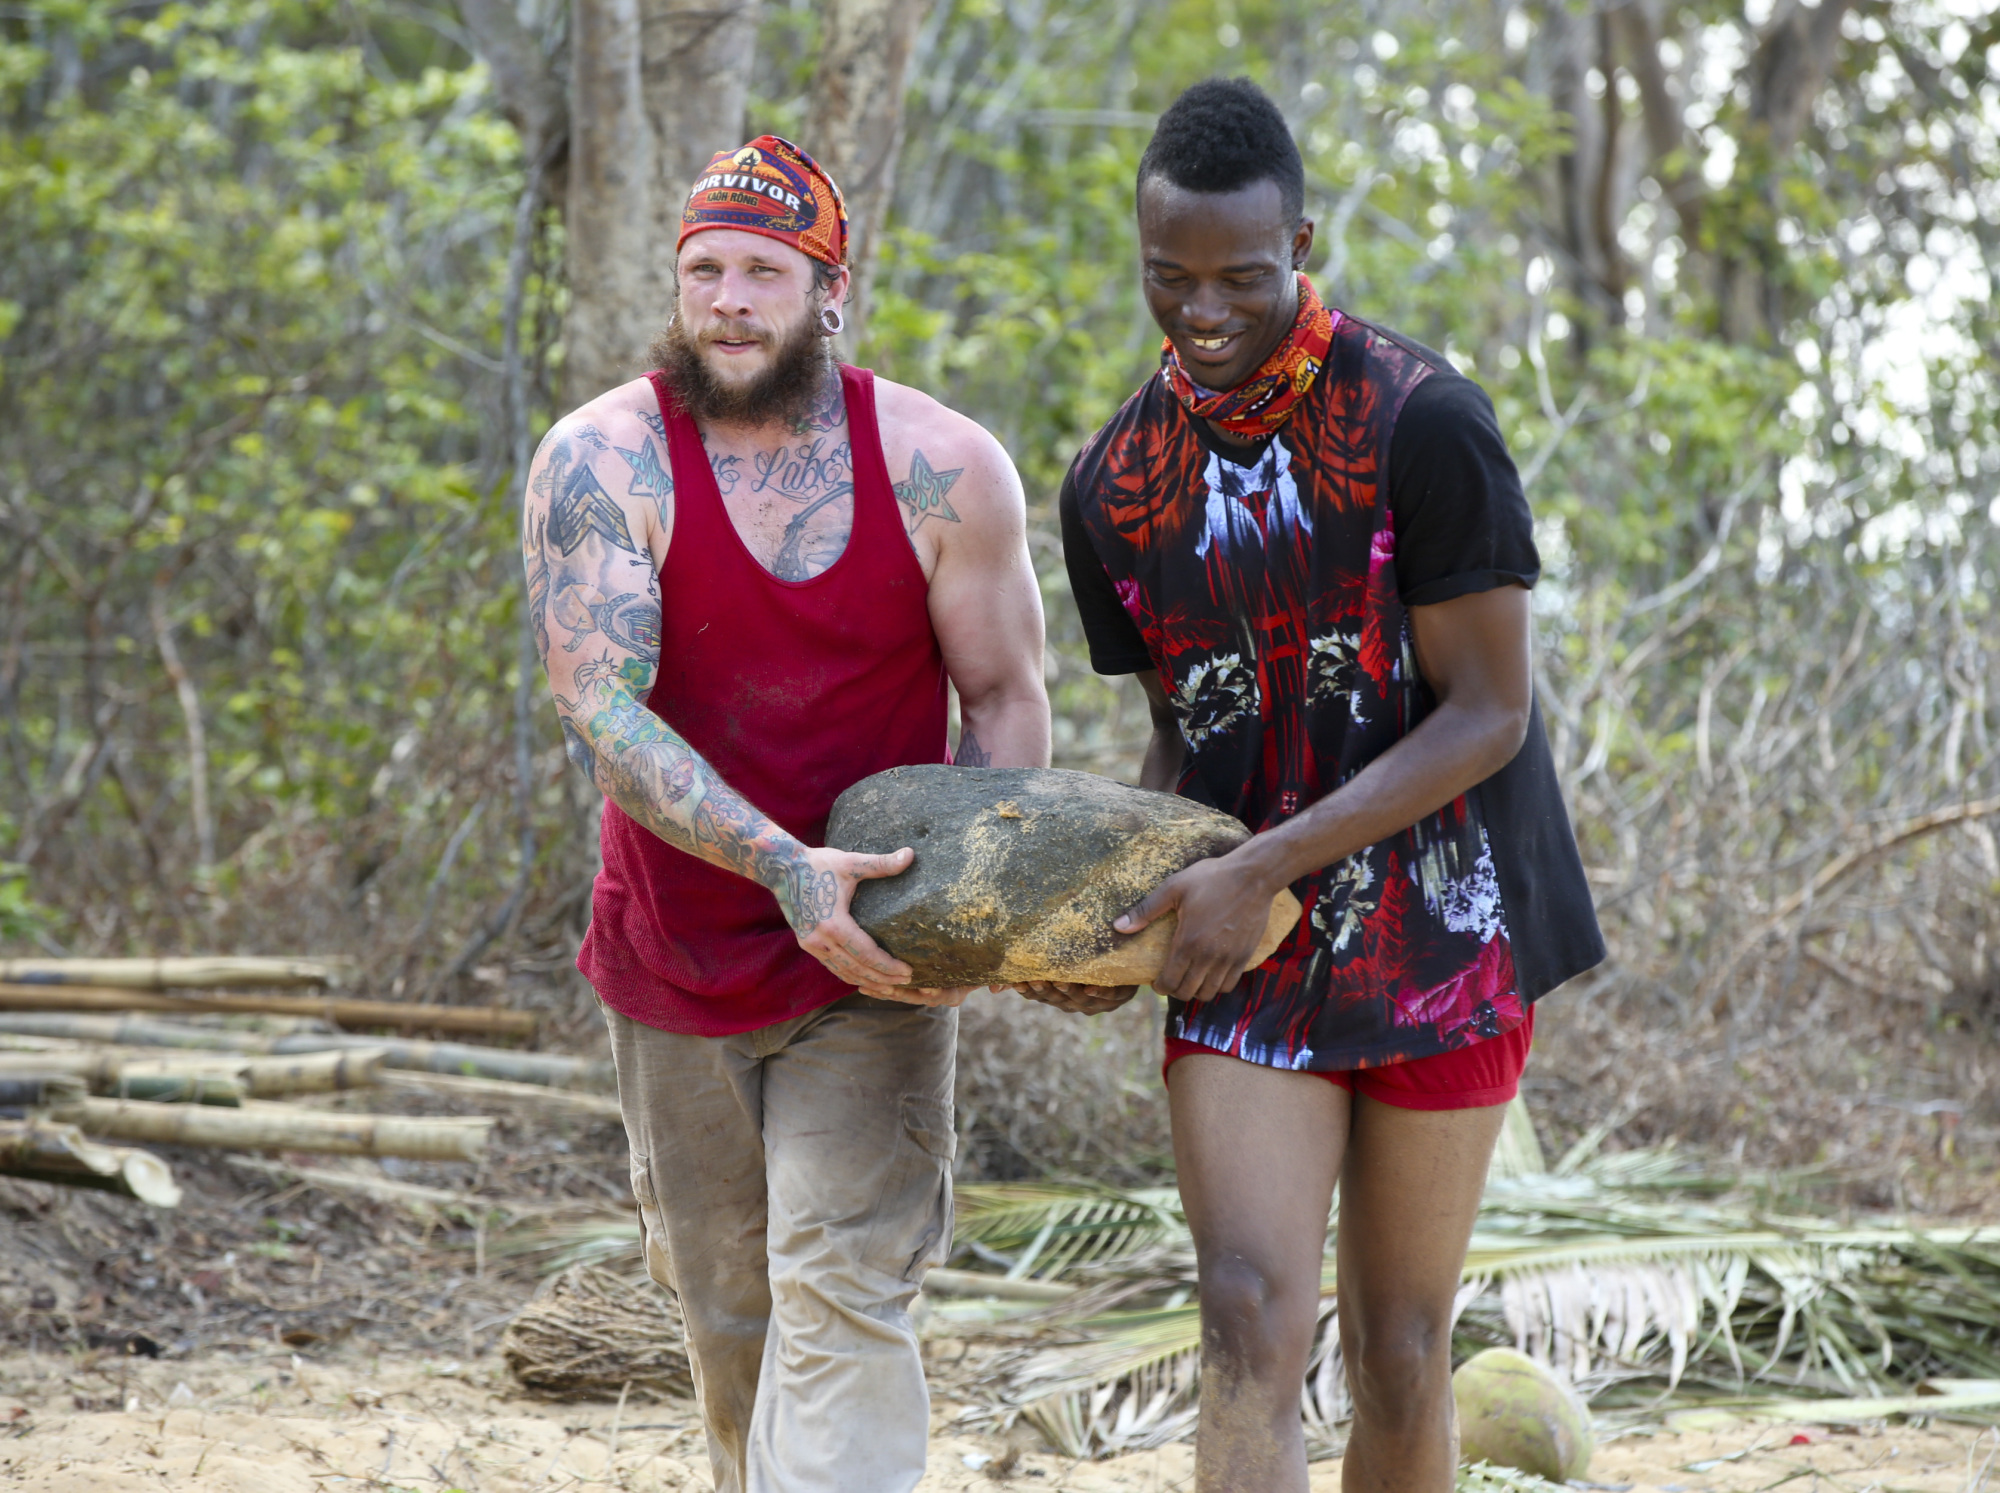 Kyle Jason and Darnell Hamilton work at Brawn camp on Survivor: Kaoh Rong